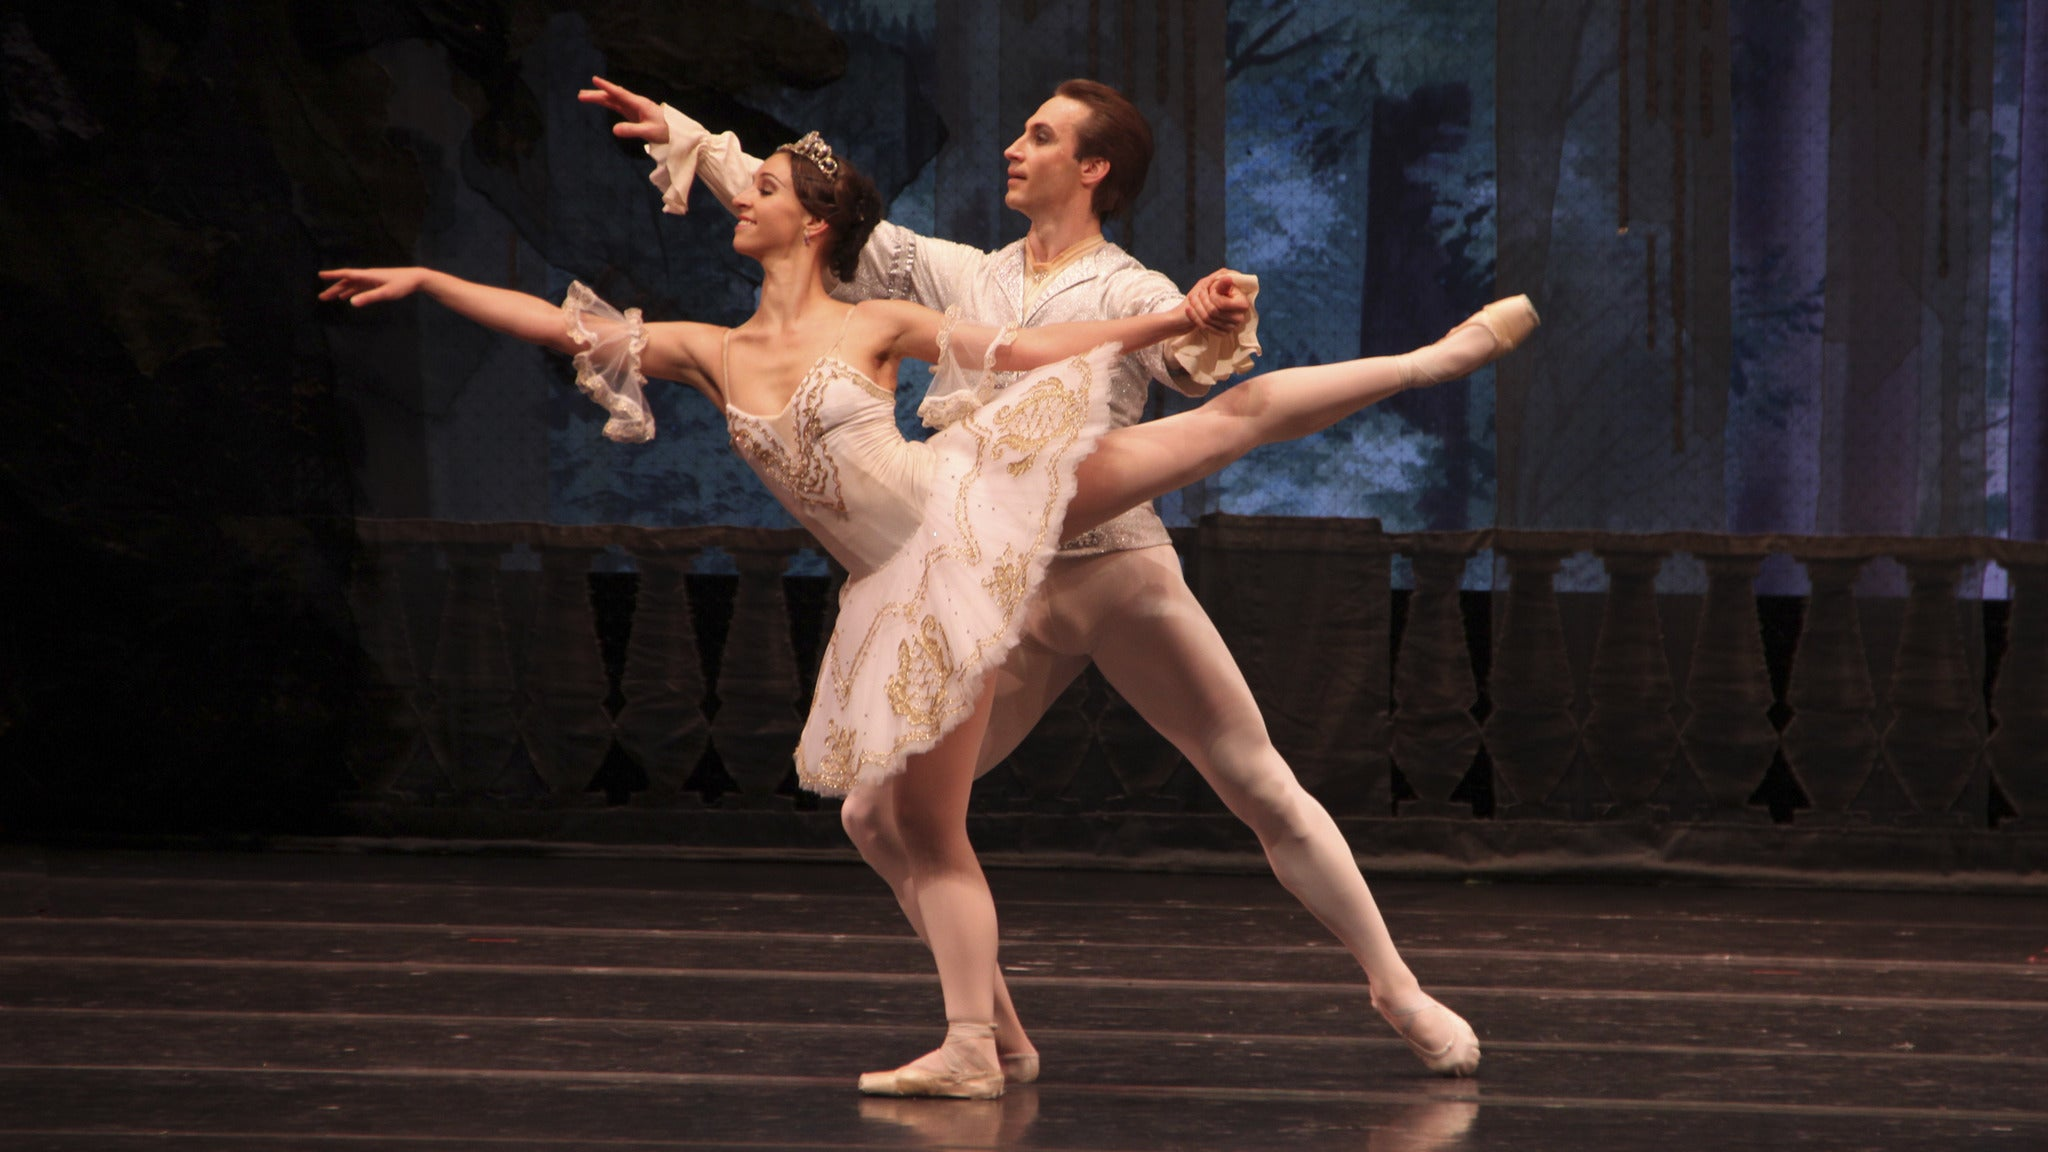 Stars of the Russian National Ballet - The Sleeping Beauty - San Diego, CA 92101